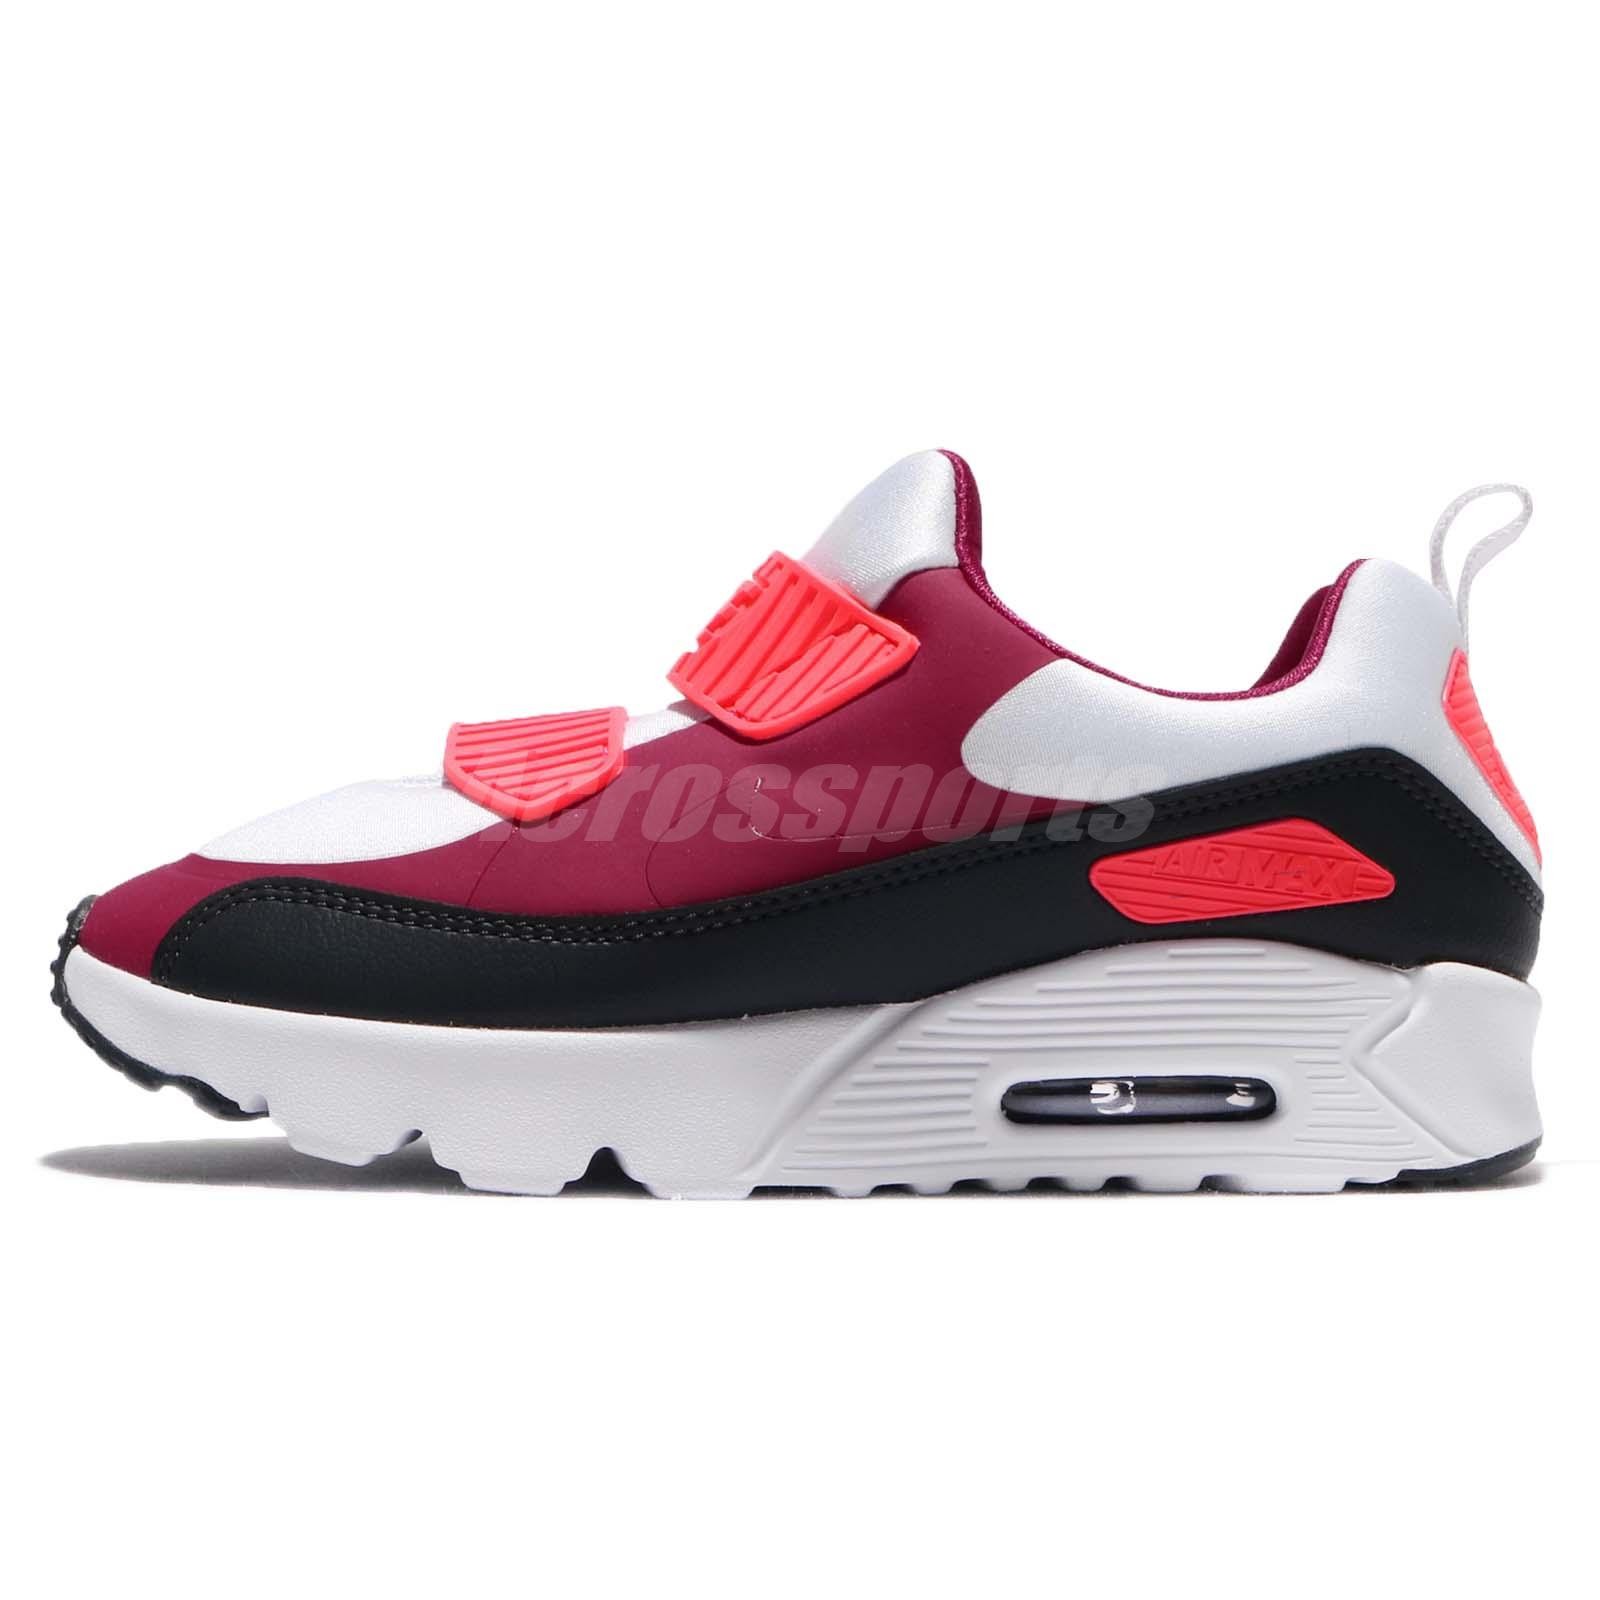 ... huge discount b36b9 60d4e Nike Air Max Tiny 90 PS Noble Red Anthracite  Preschool Kids Shoes ... 2a1ffabc90